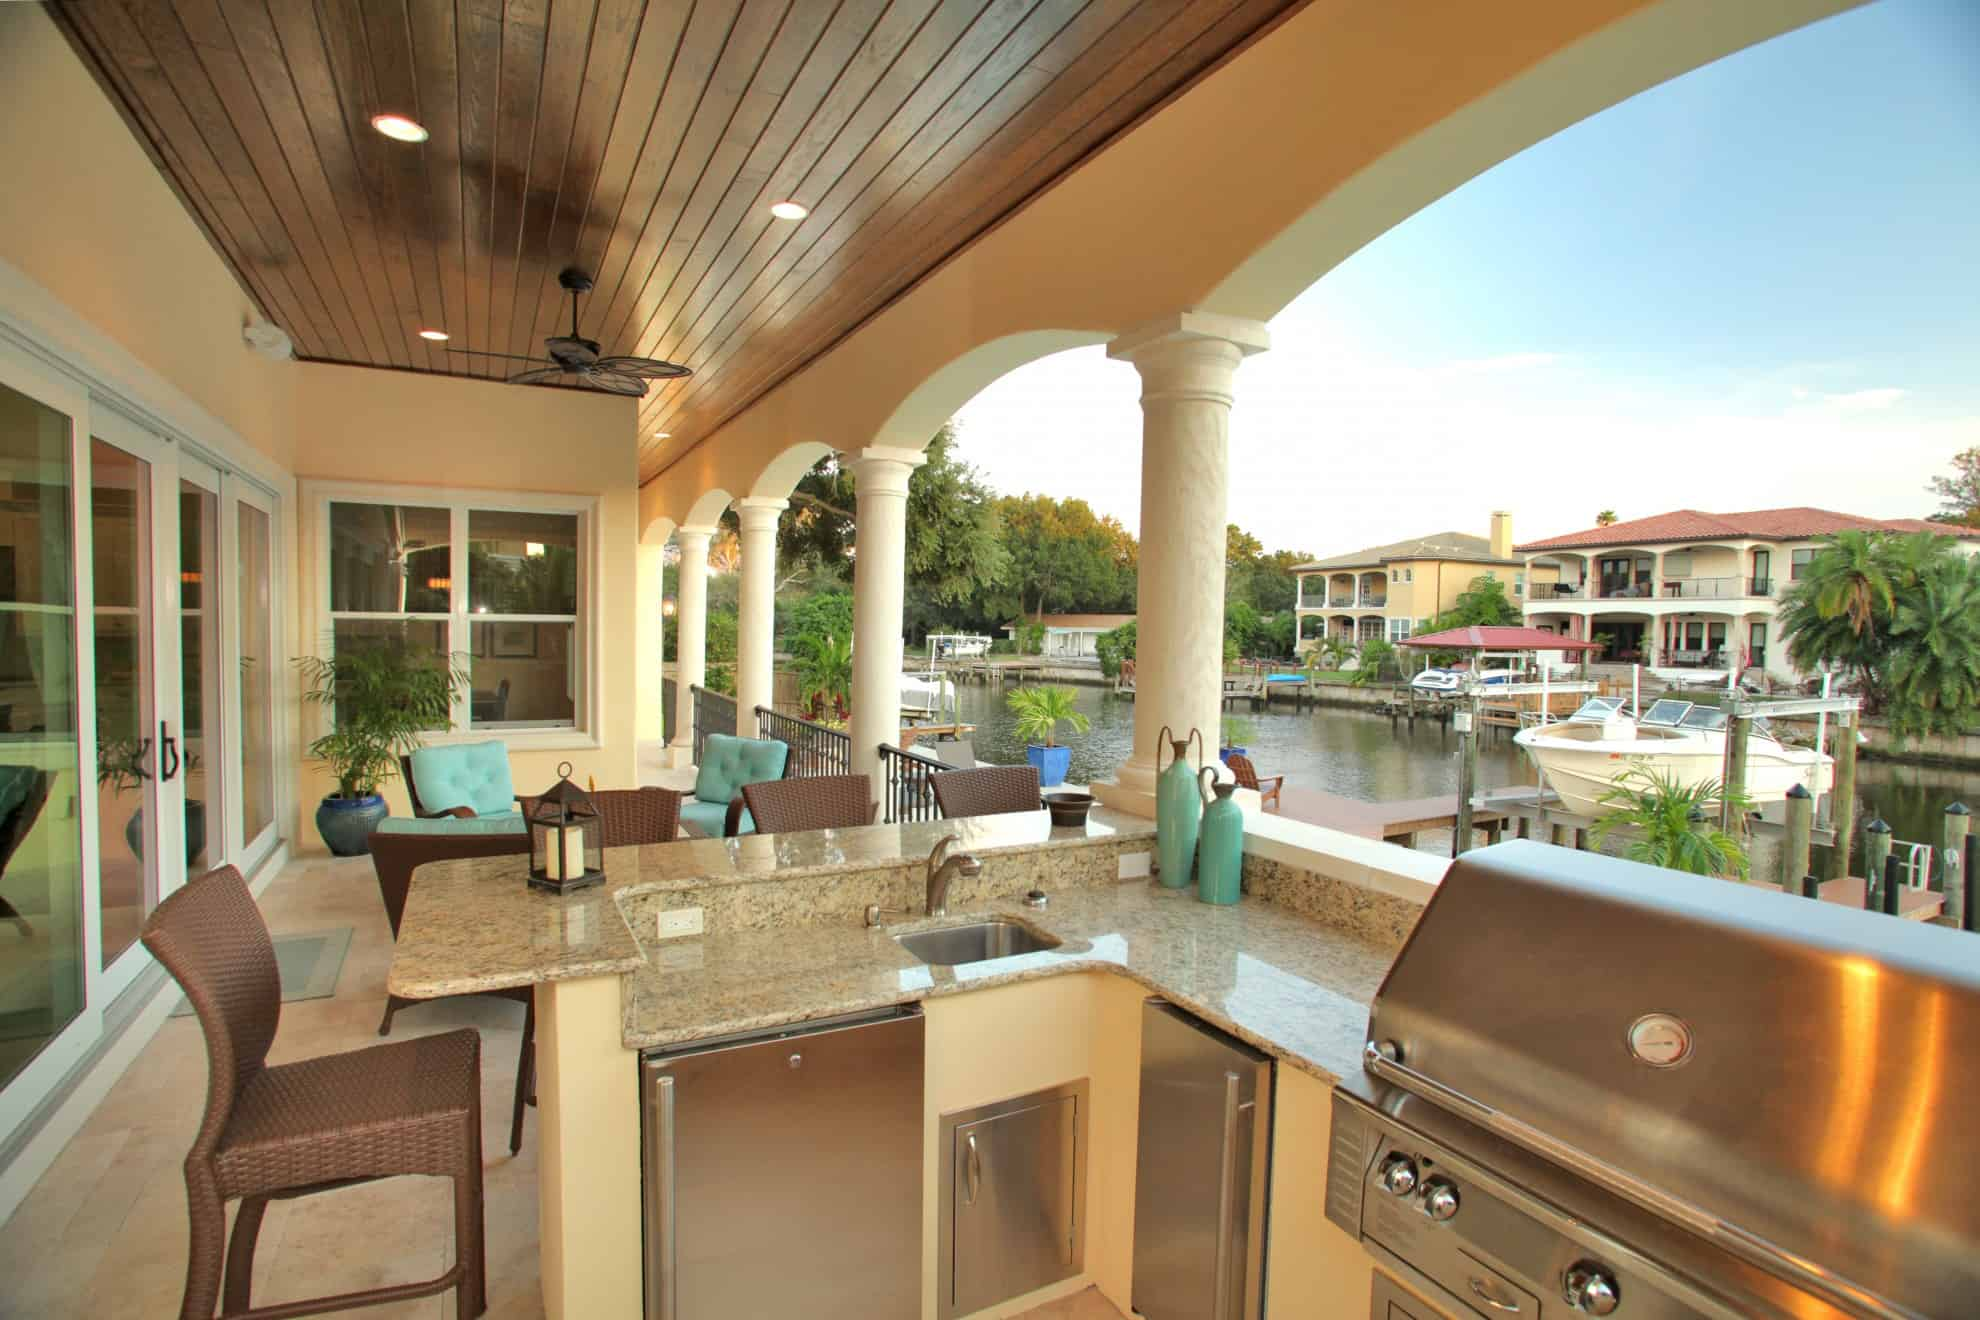 Outdoor Living Areas | Tampa Bay | Devonshire Custom Homes on Outside Living Area id=72444